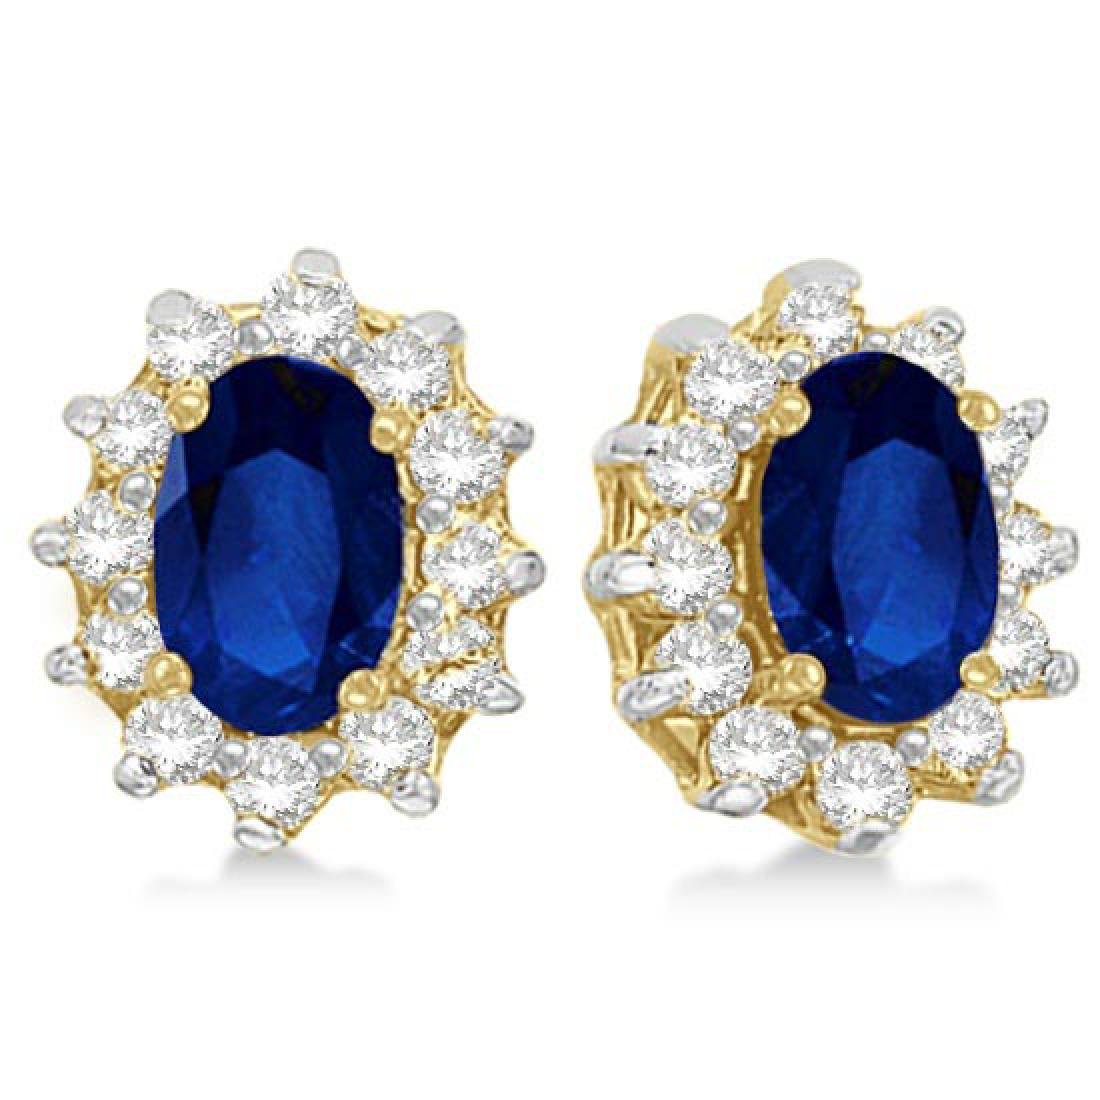 Oval Blue Sapphire and Diamond Accents Earrings 14k Yel